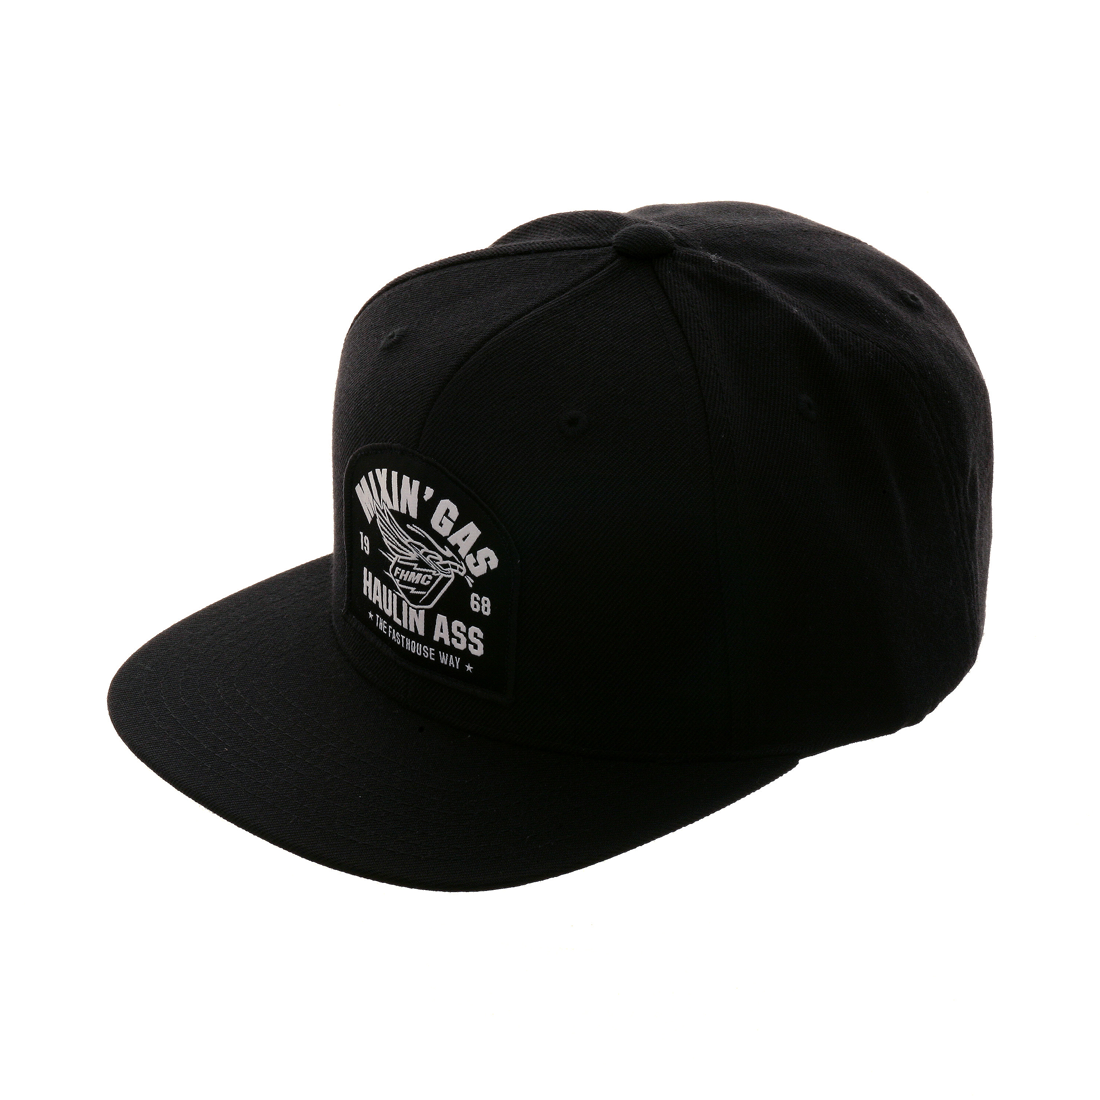 Fasthouse Mixin Gas Snapback Hat - Black – Hat Club 78e11647272f